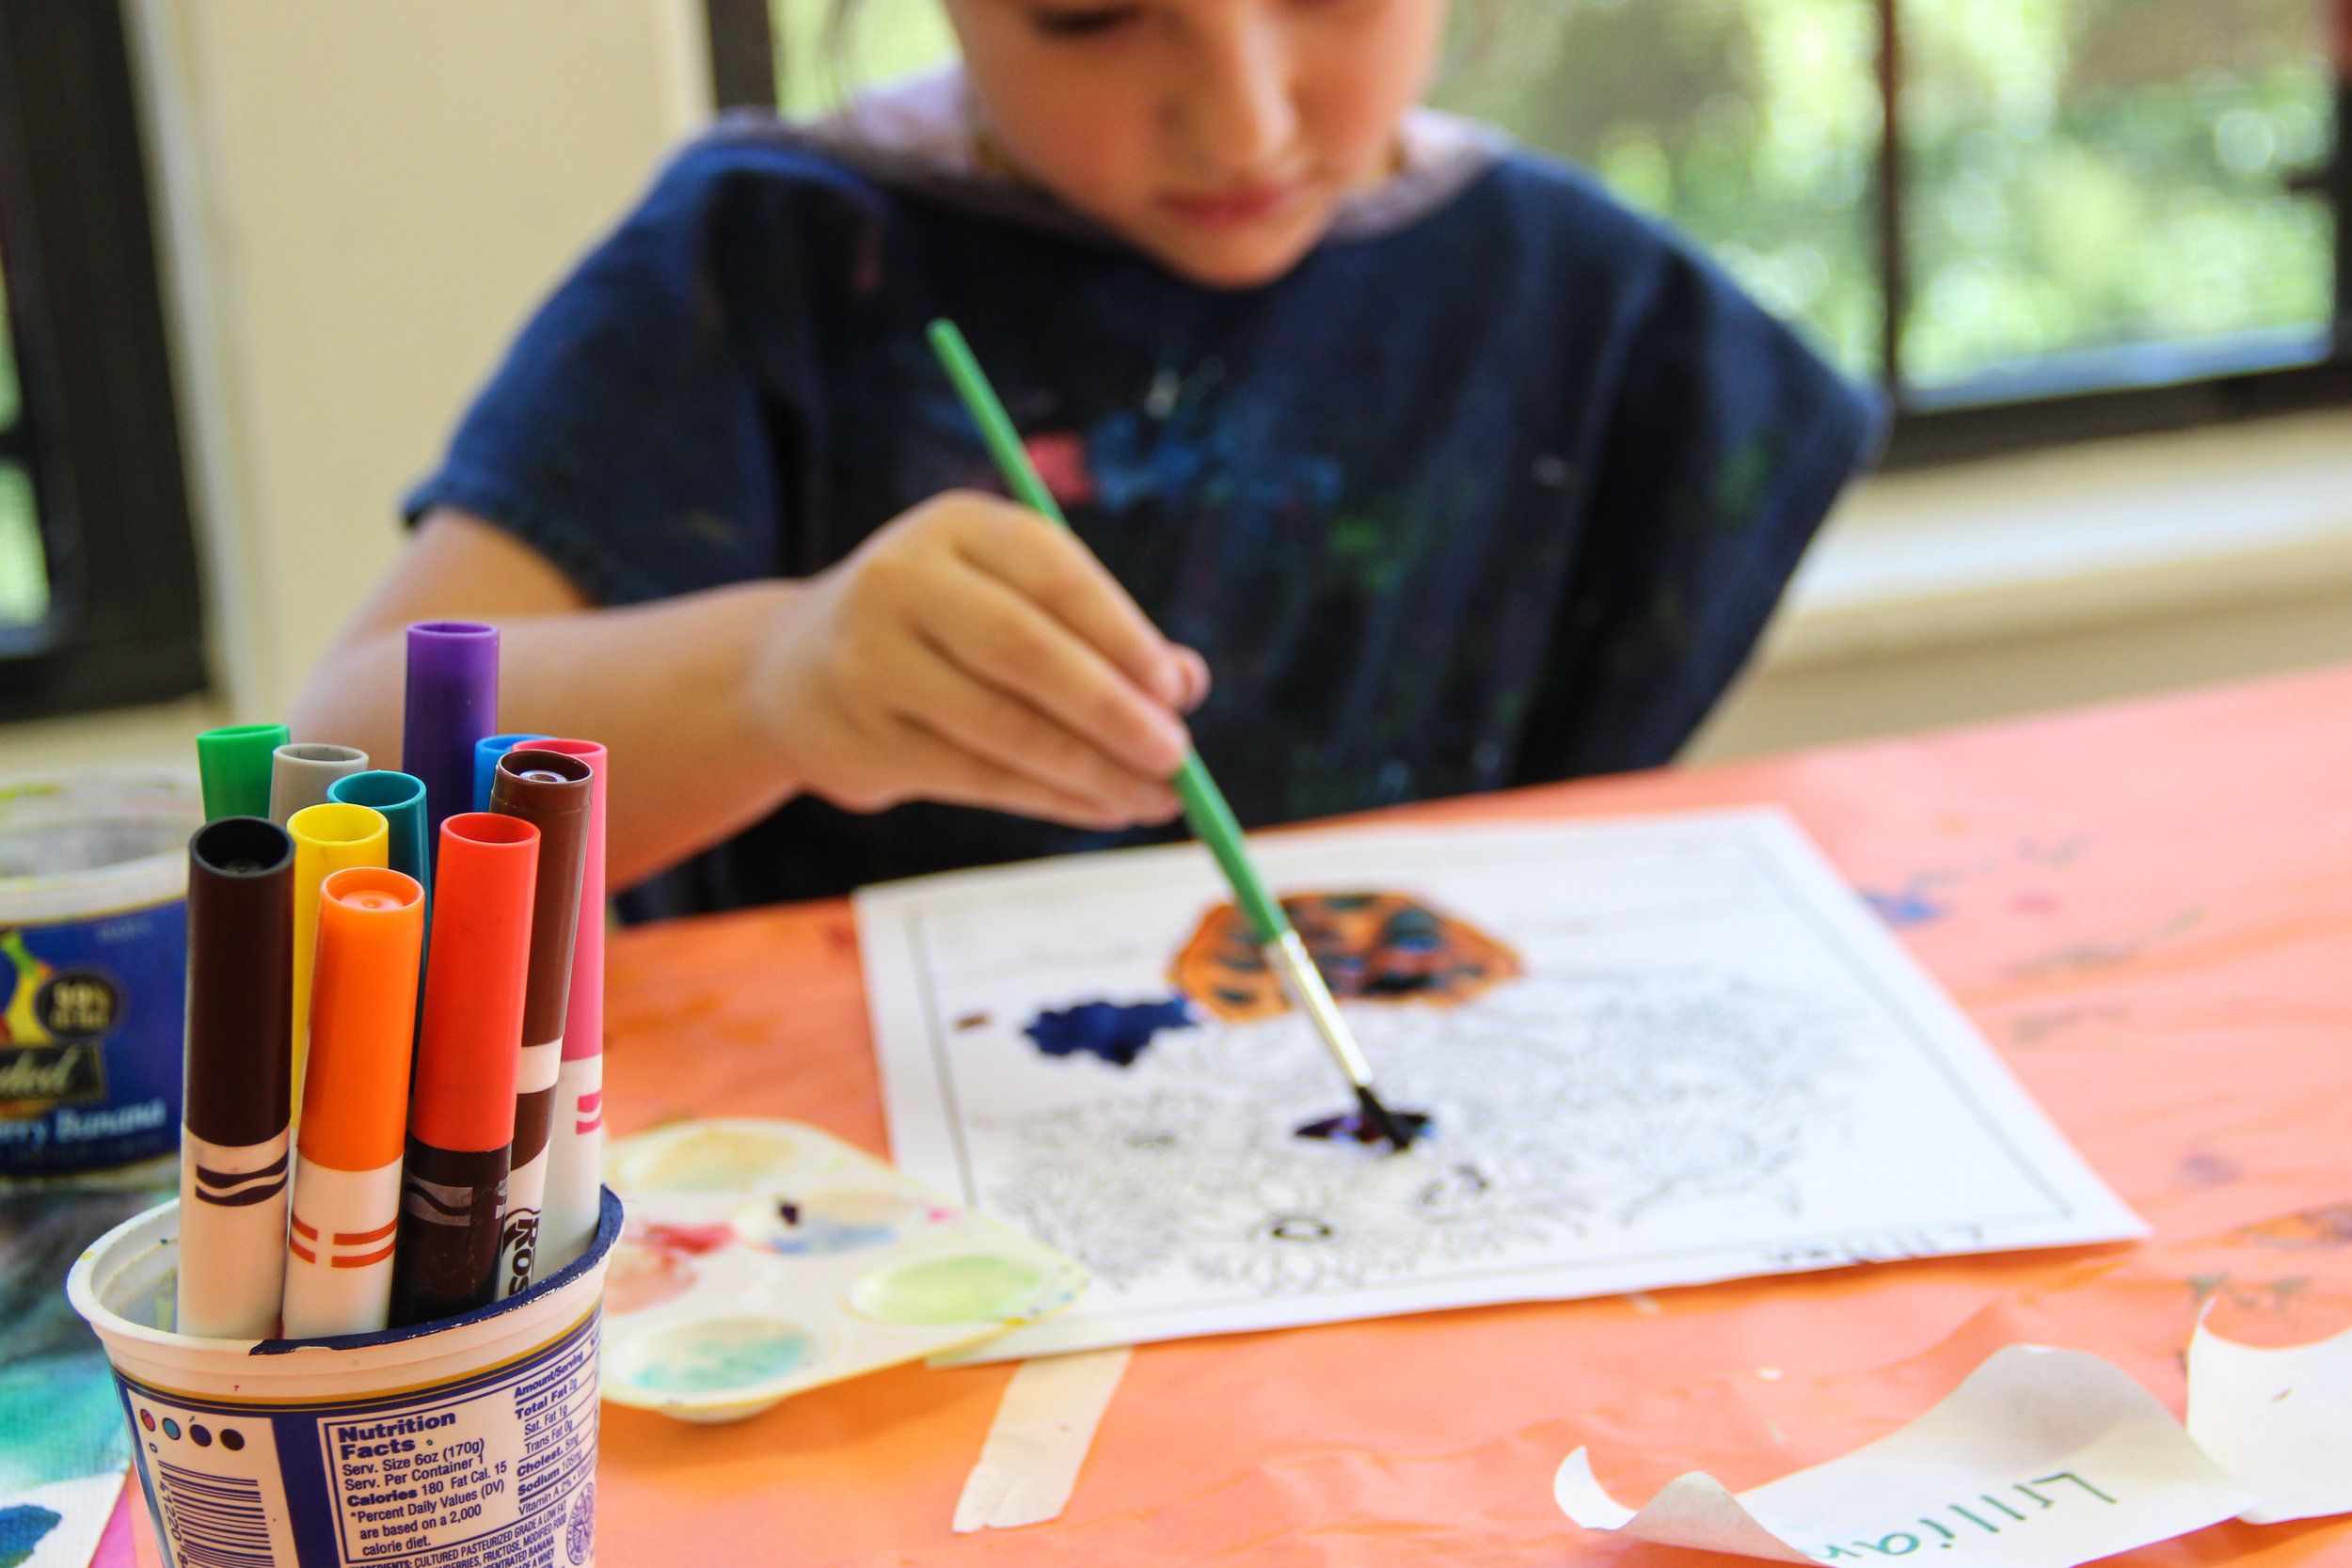 The Art Center of Waco offers classes in visual art for kids throughout the year, as well as Summer Art Camps. Last summer, they had 13 camps that reached 132 kids ages 5-16!